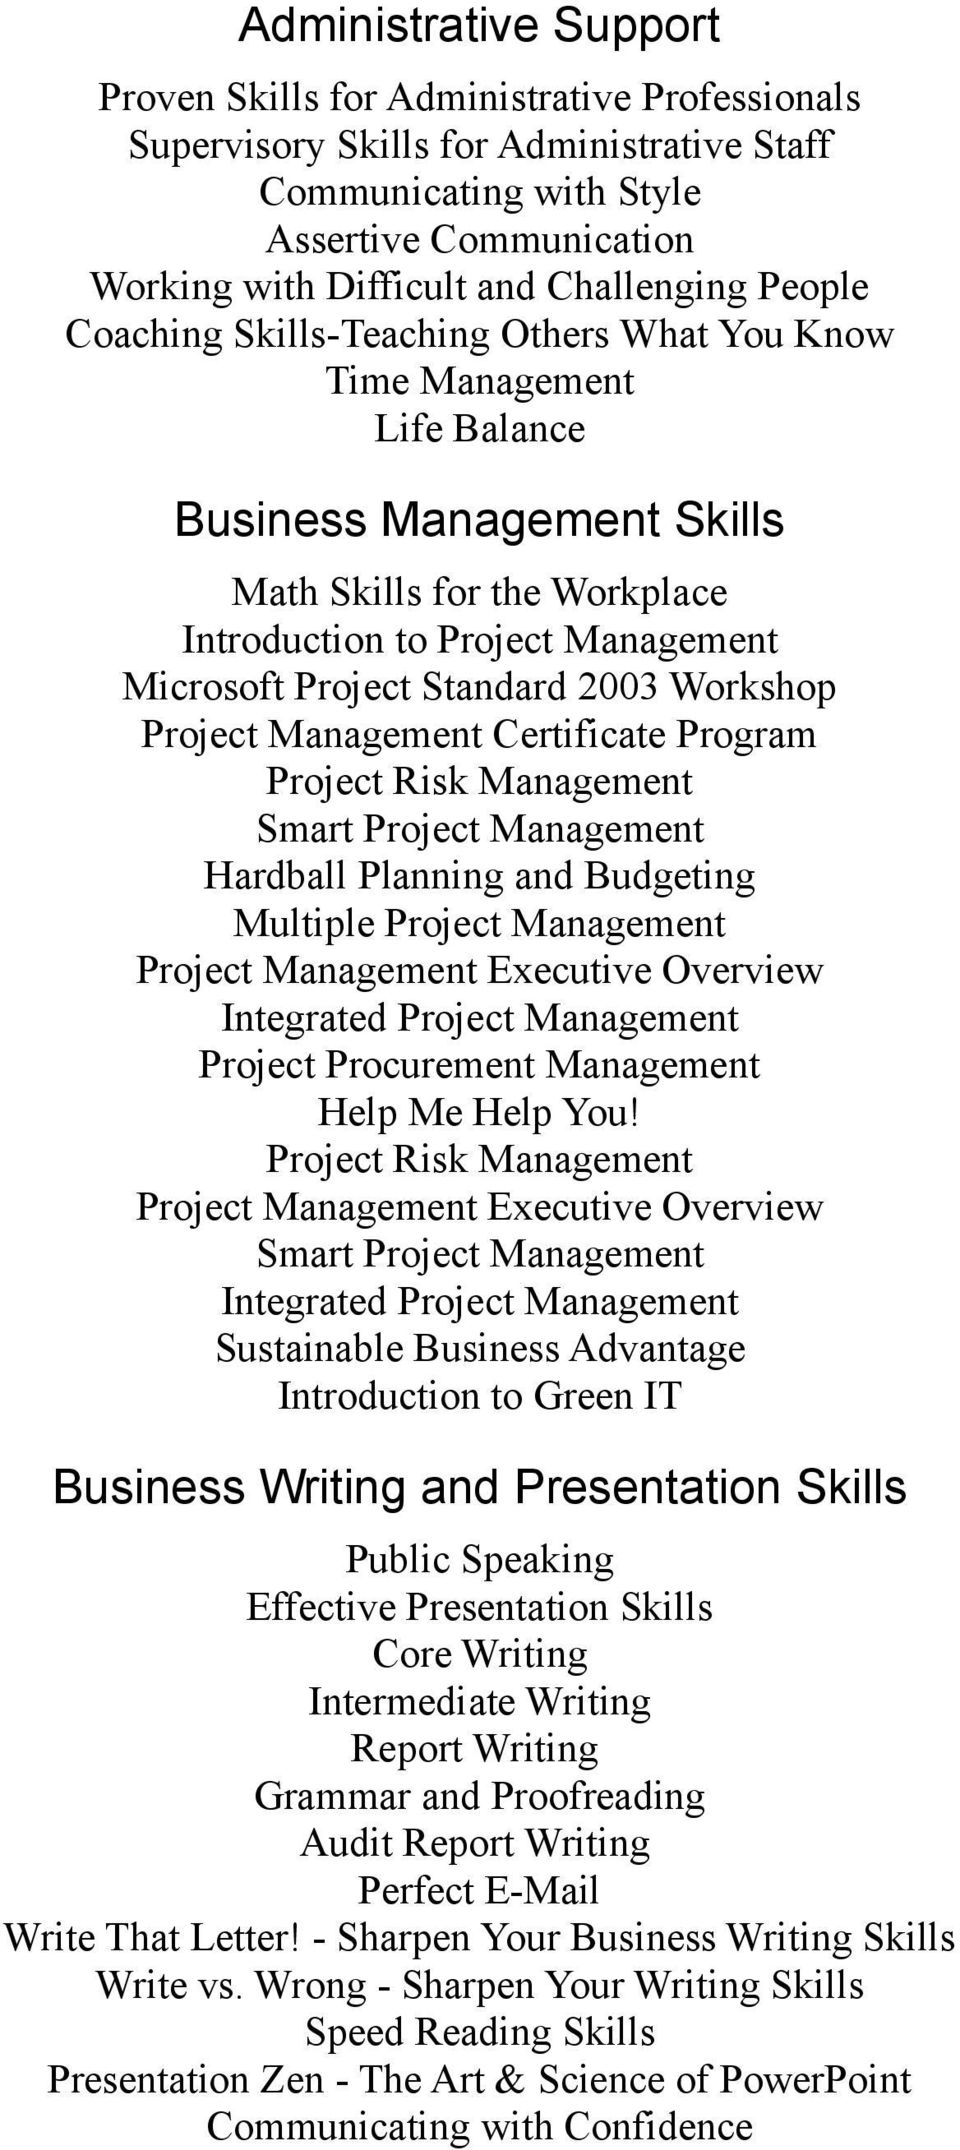 Project Standard 2003 Workshop Project Management Certificate Program Project Risk Management Smart Project Management Hardball Planning and Budgeting Multiple Project Management Project Management